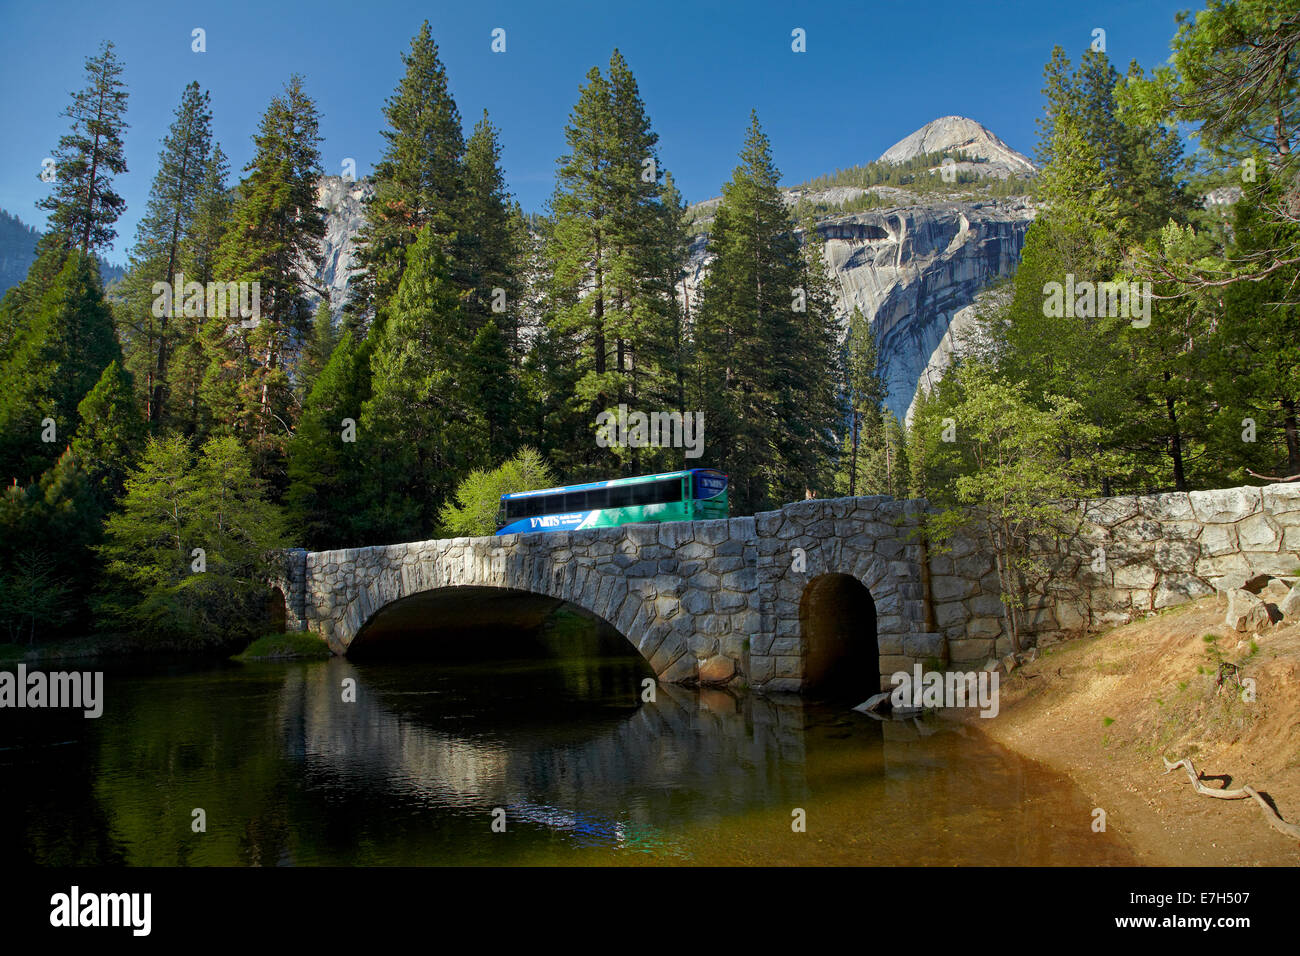 Bus on Stoneman Bridge over Merced River, Yosemite Valley, Yosemite National Park, California, USA - Stock Image